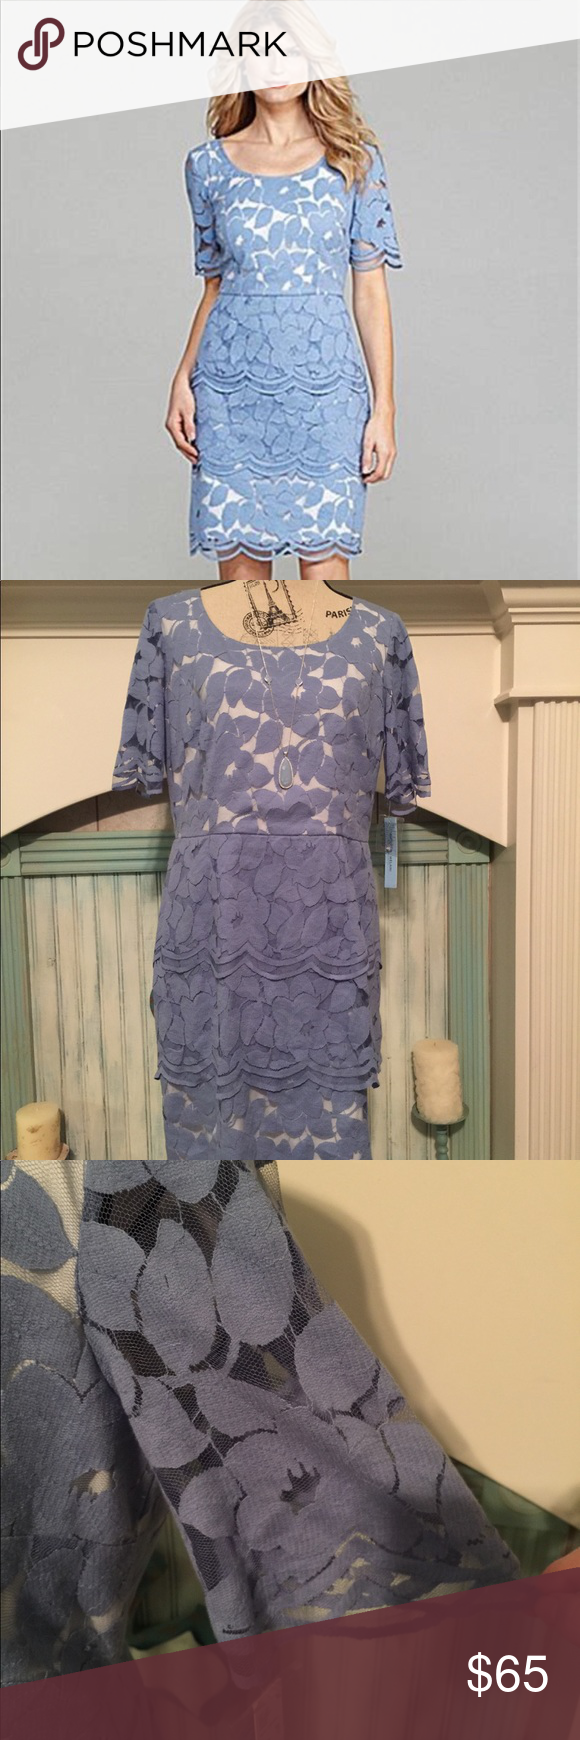 d5a5c152a09 NWT Antonio Melani Tatum floral lace dress 12 Beautifully made Antonio  Melani lace dress. Periwinkle blue color. Bought to wear in a wedding and  bride ...